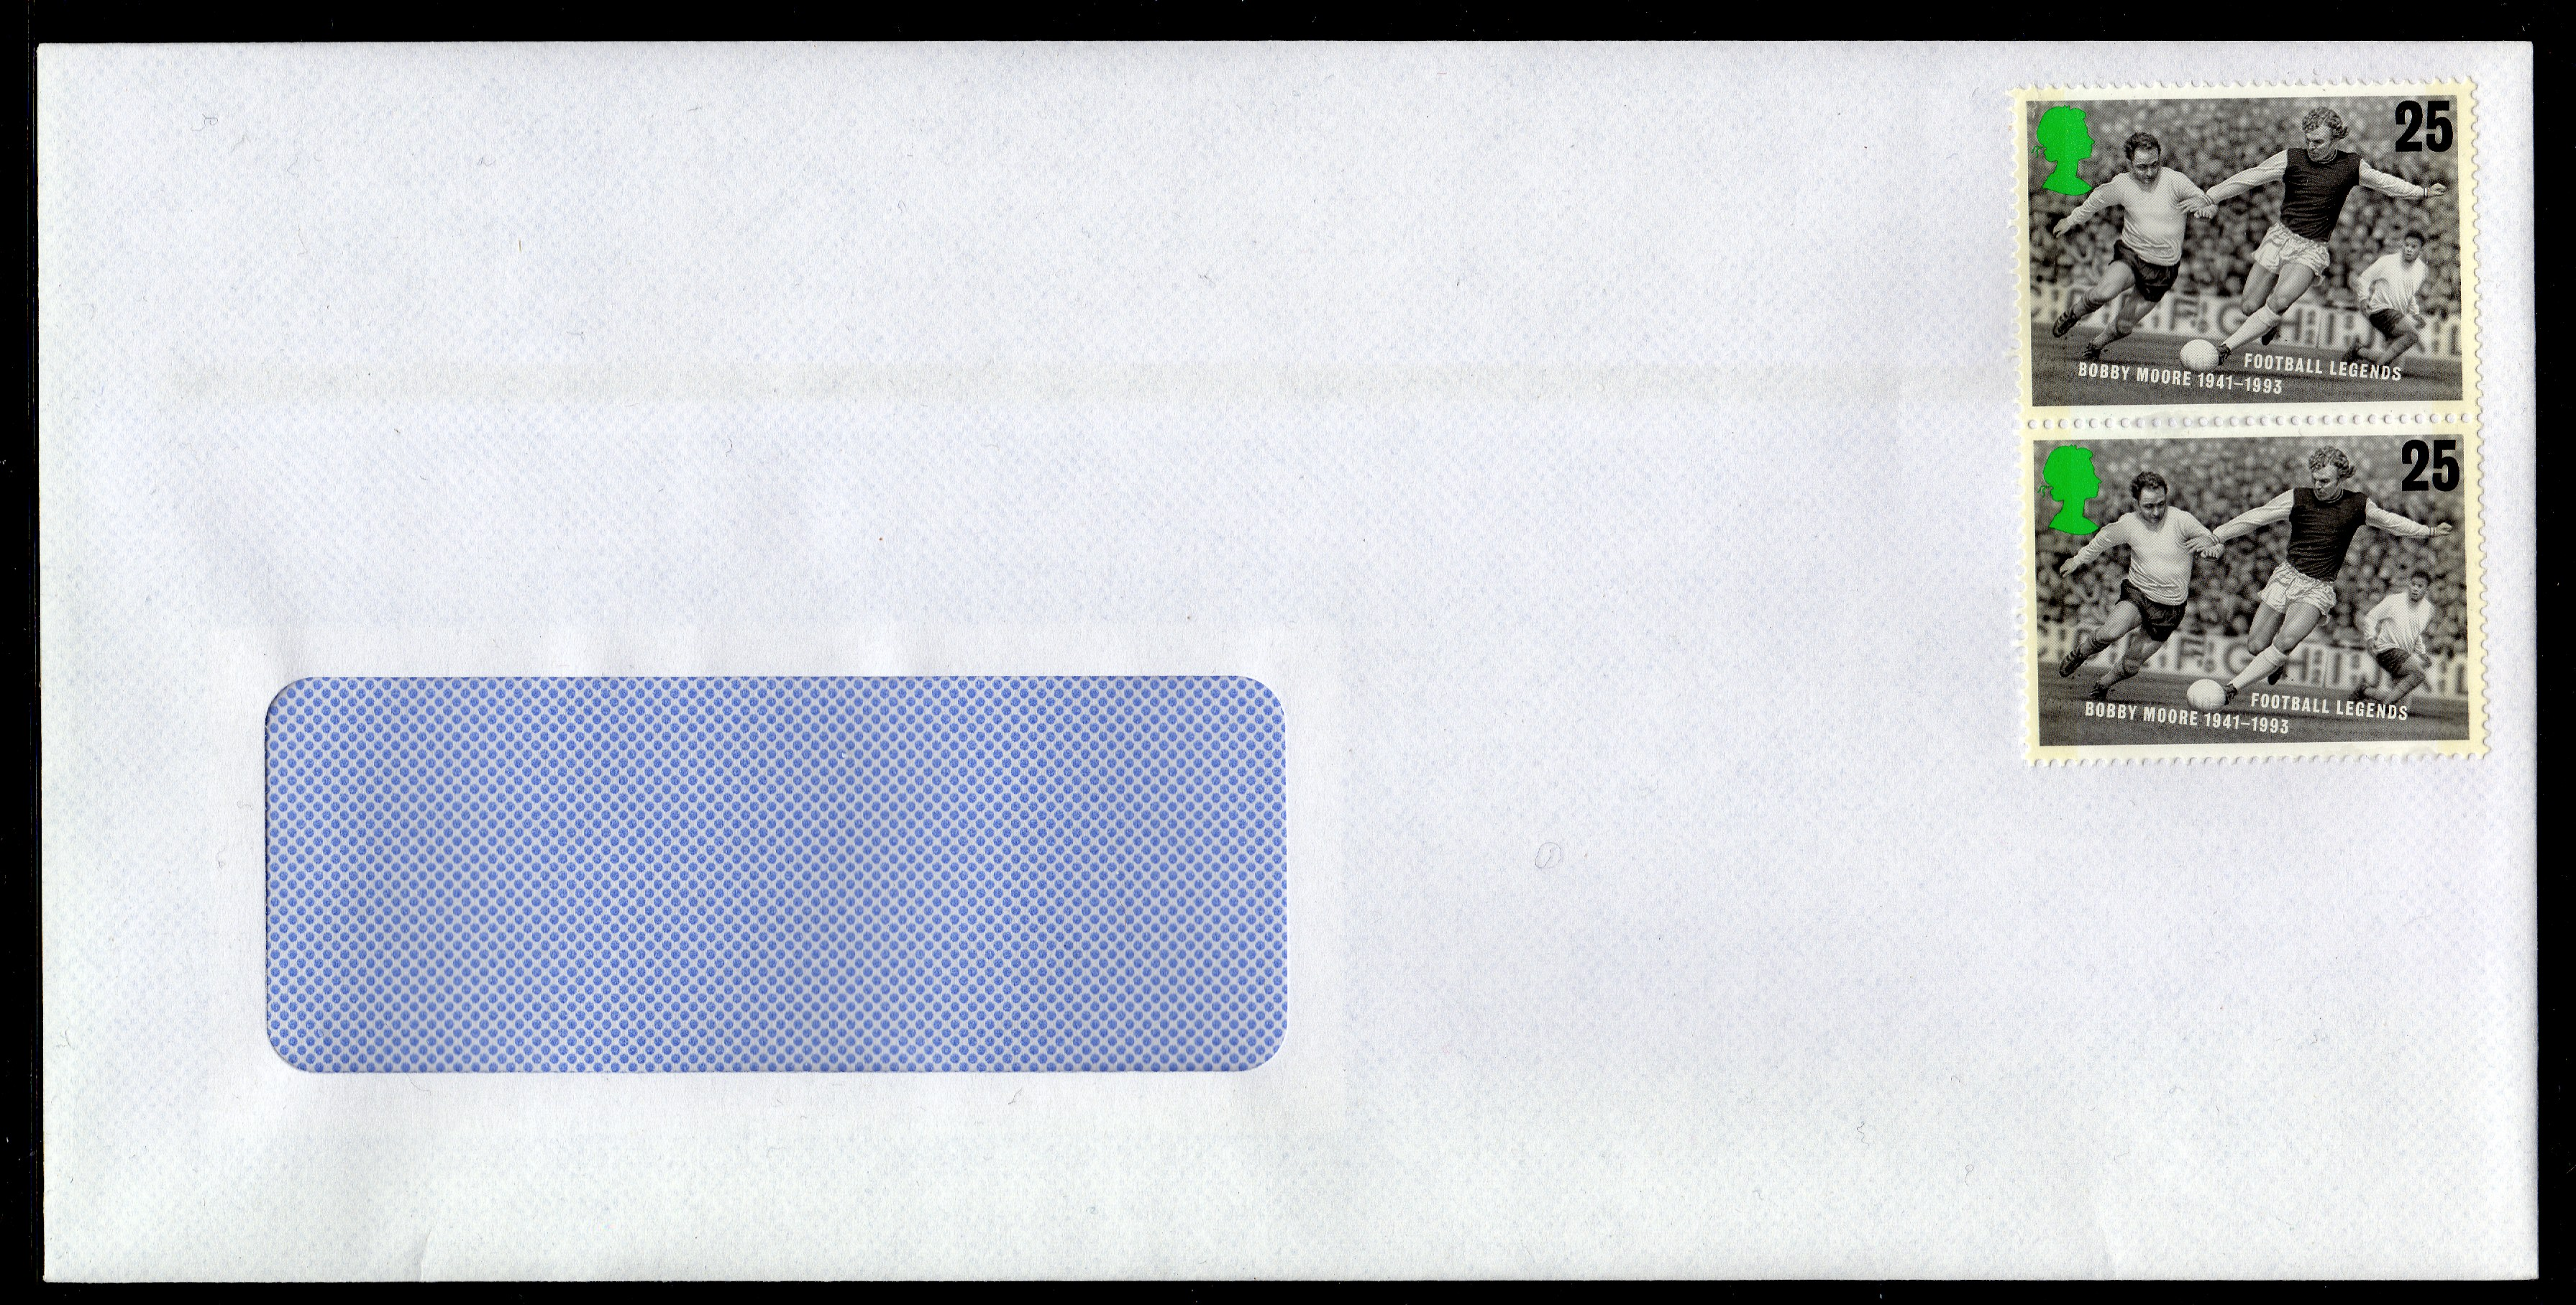 100 2nd class value stamps on envelope